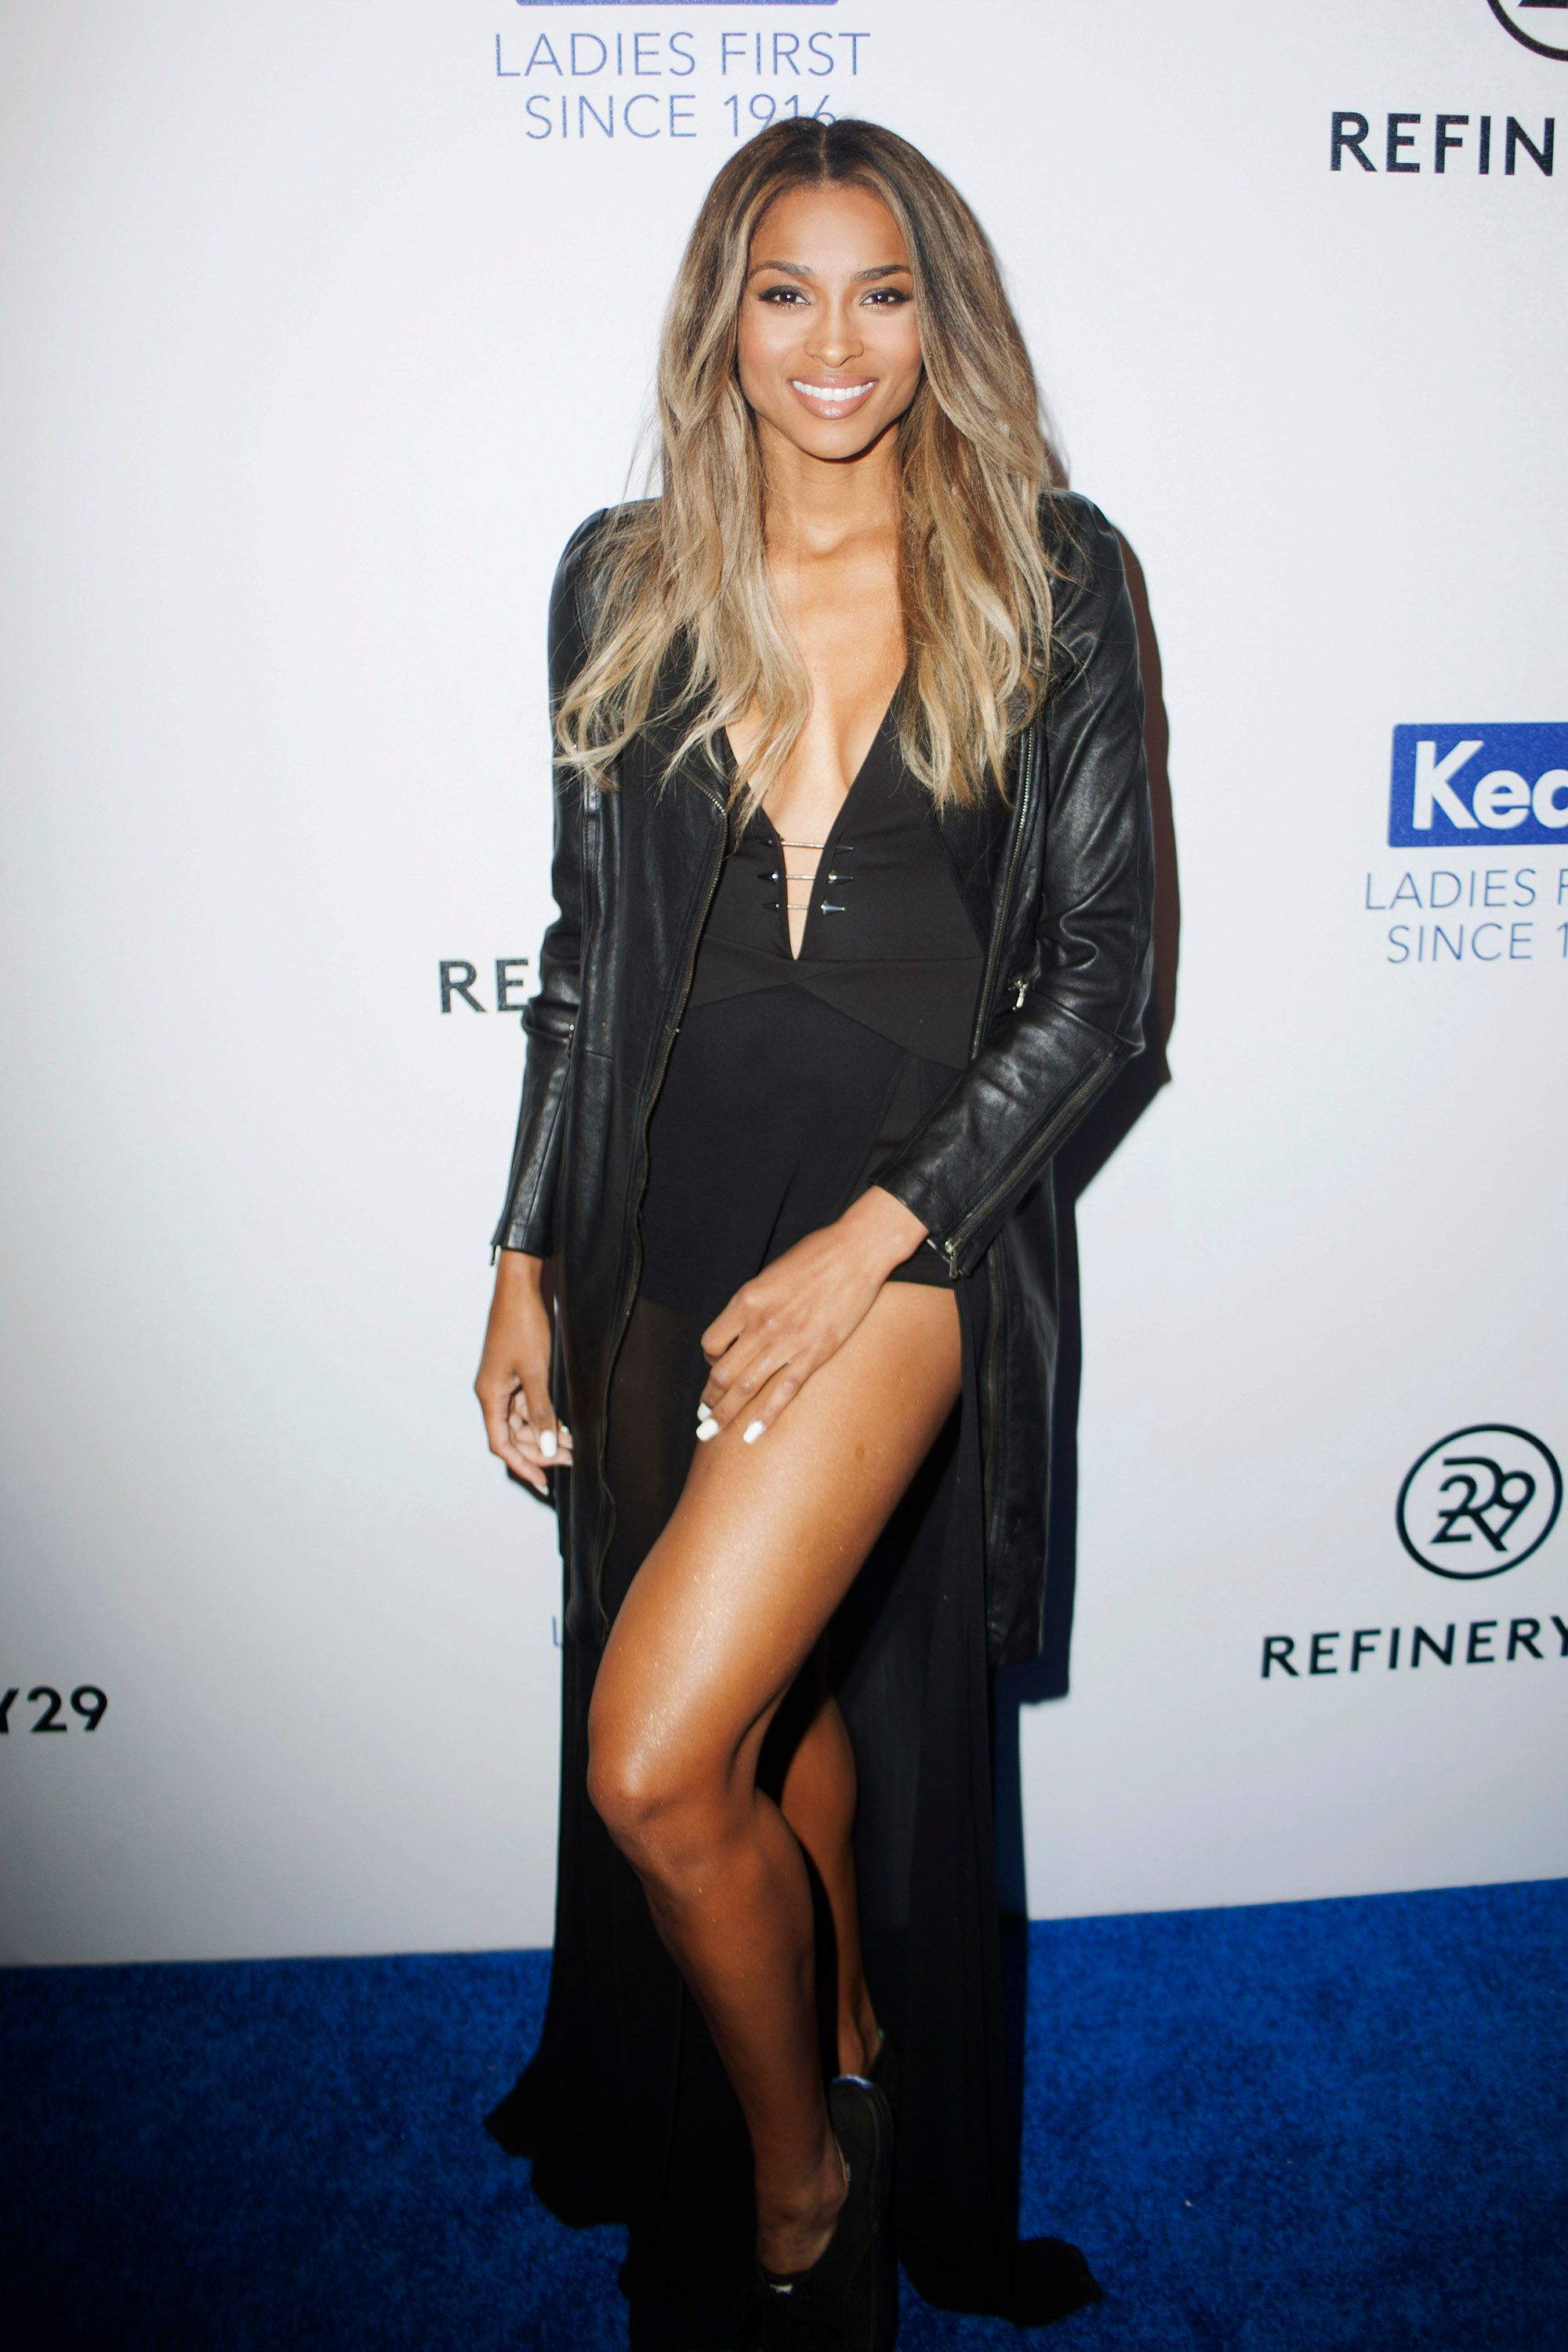 Singer Ciara at the Keds Centennial Celebration on February 10, 2016 in New York.   Photo: Getty Images